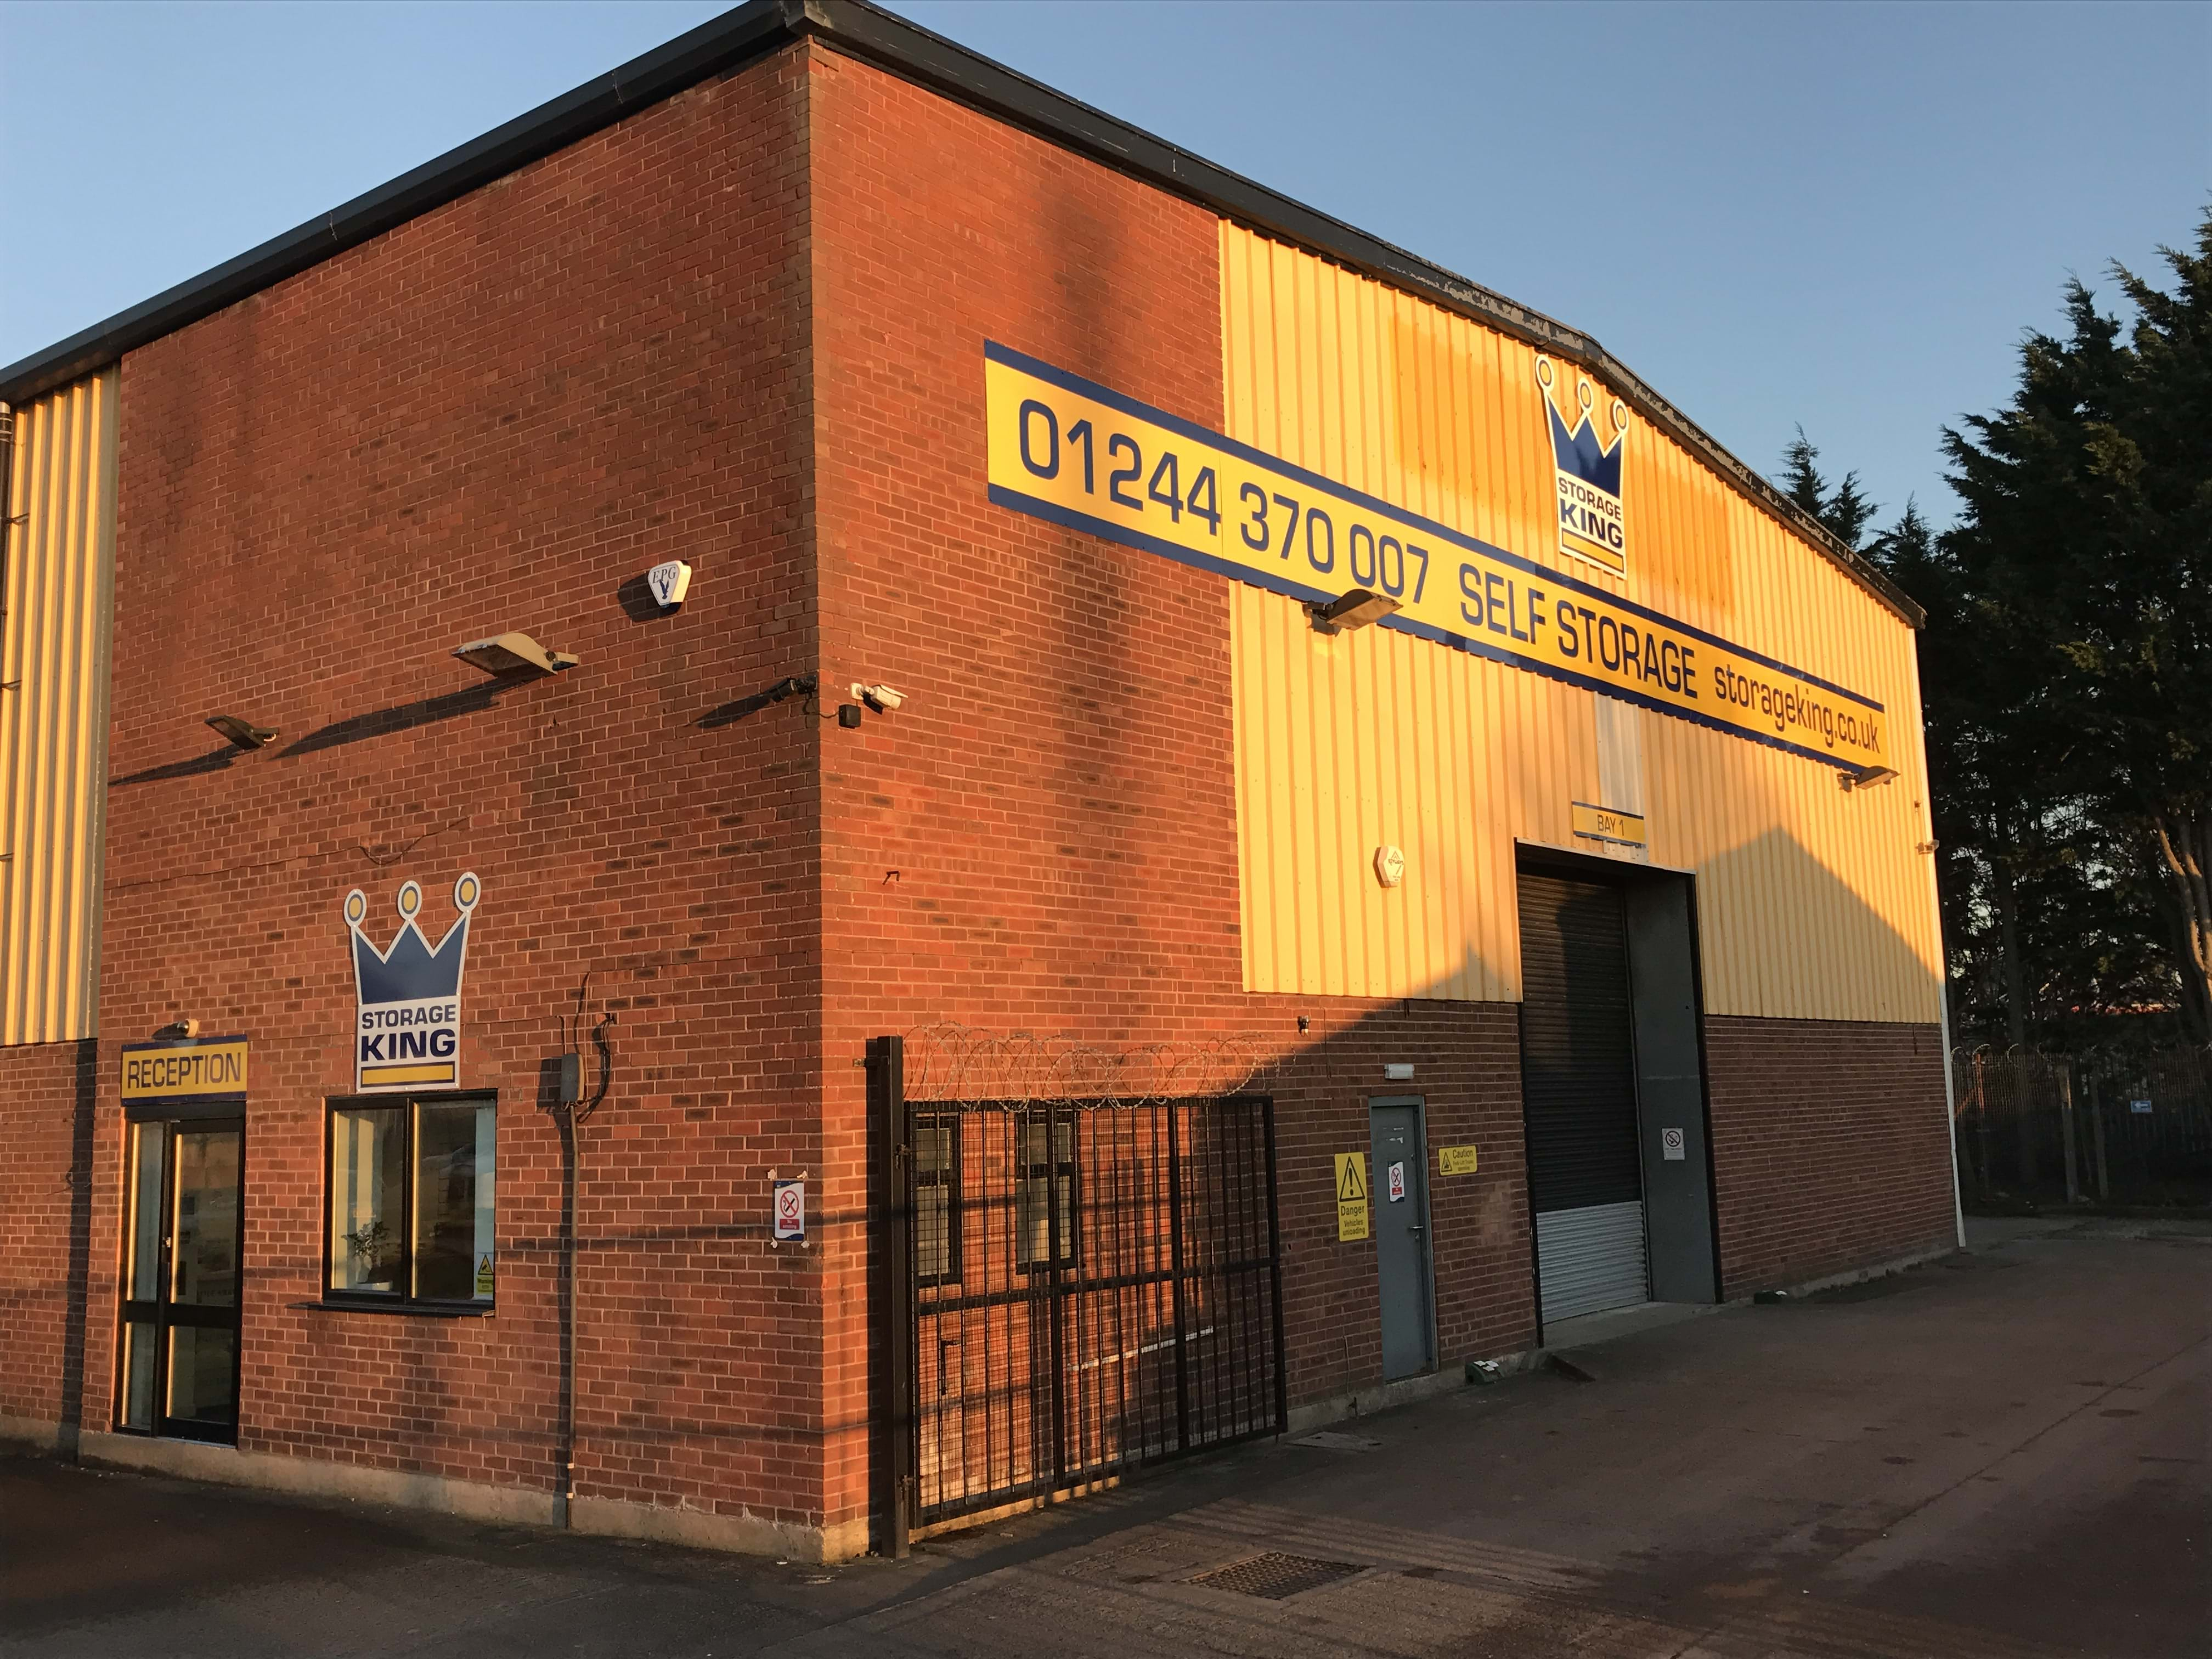 Self Storage Units Facilities Solutions Chester Uk Storage King